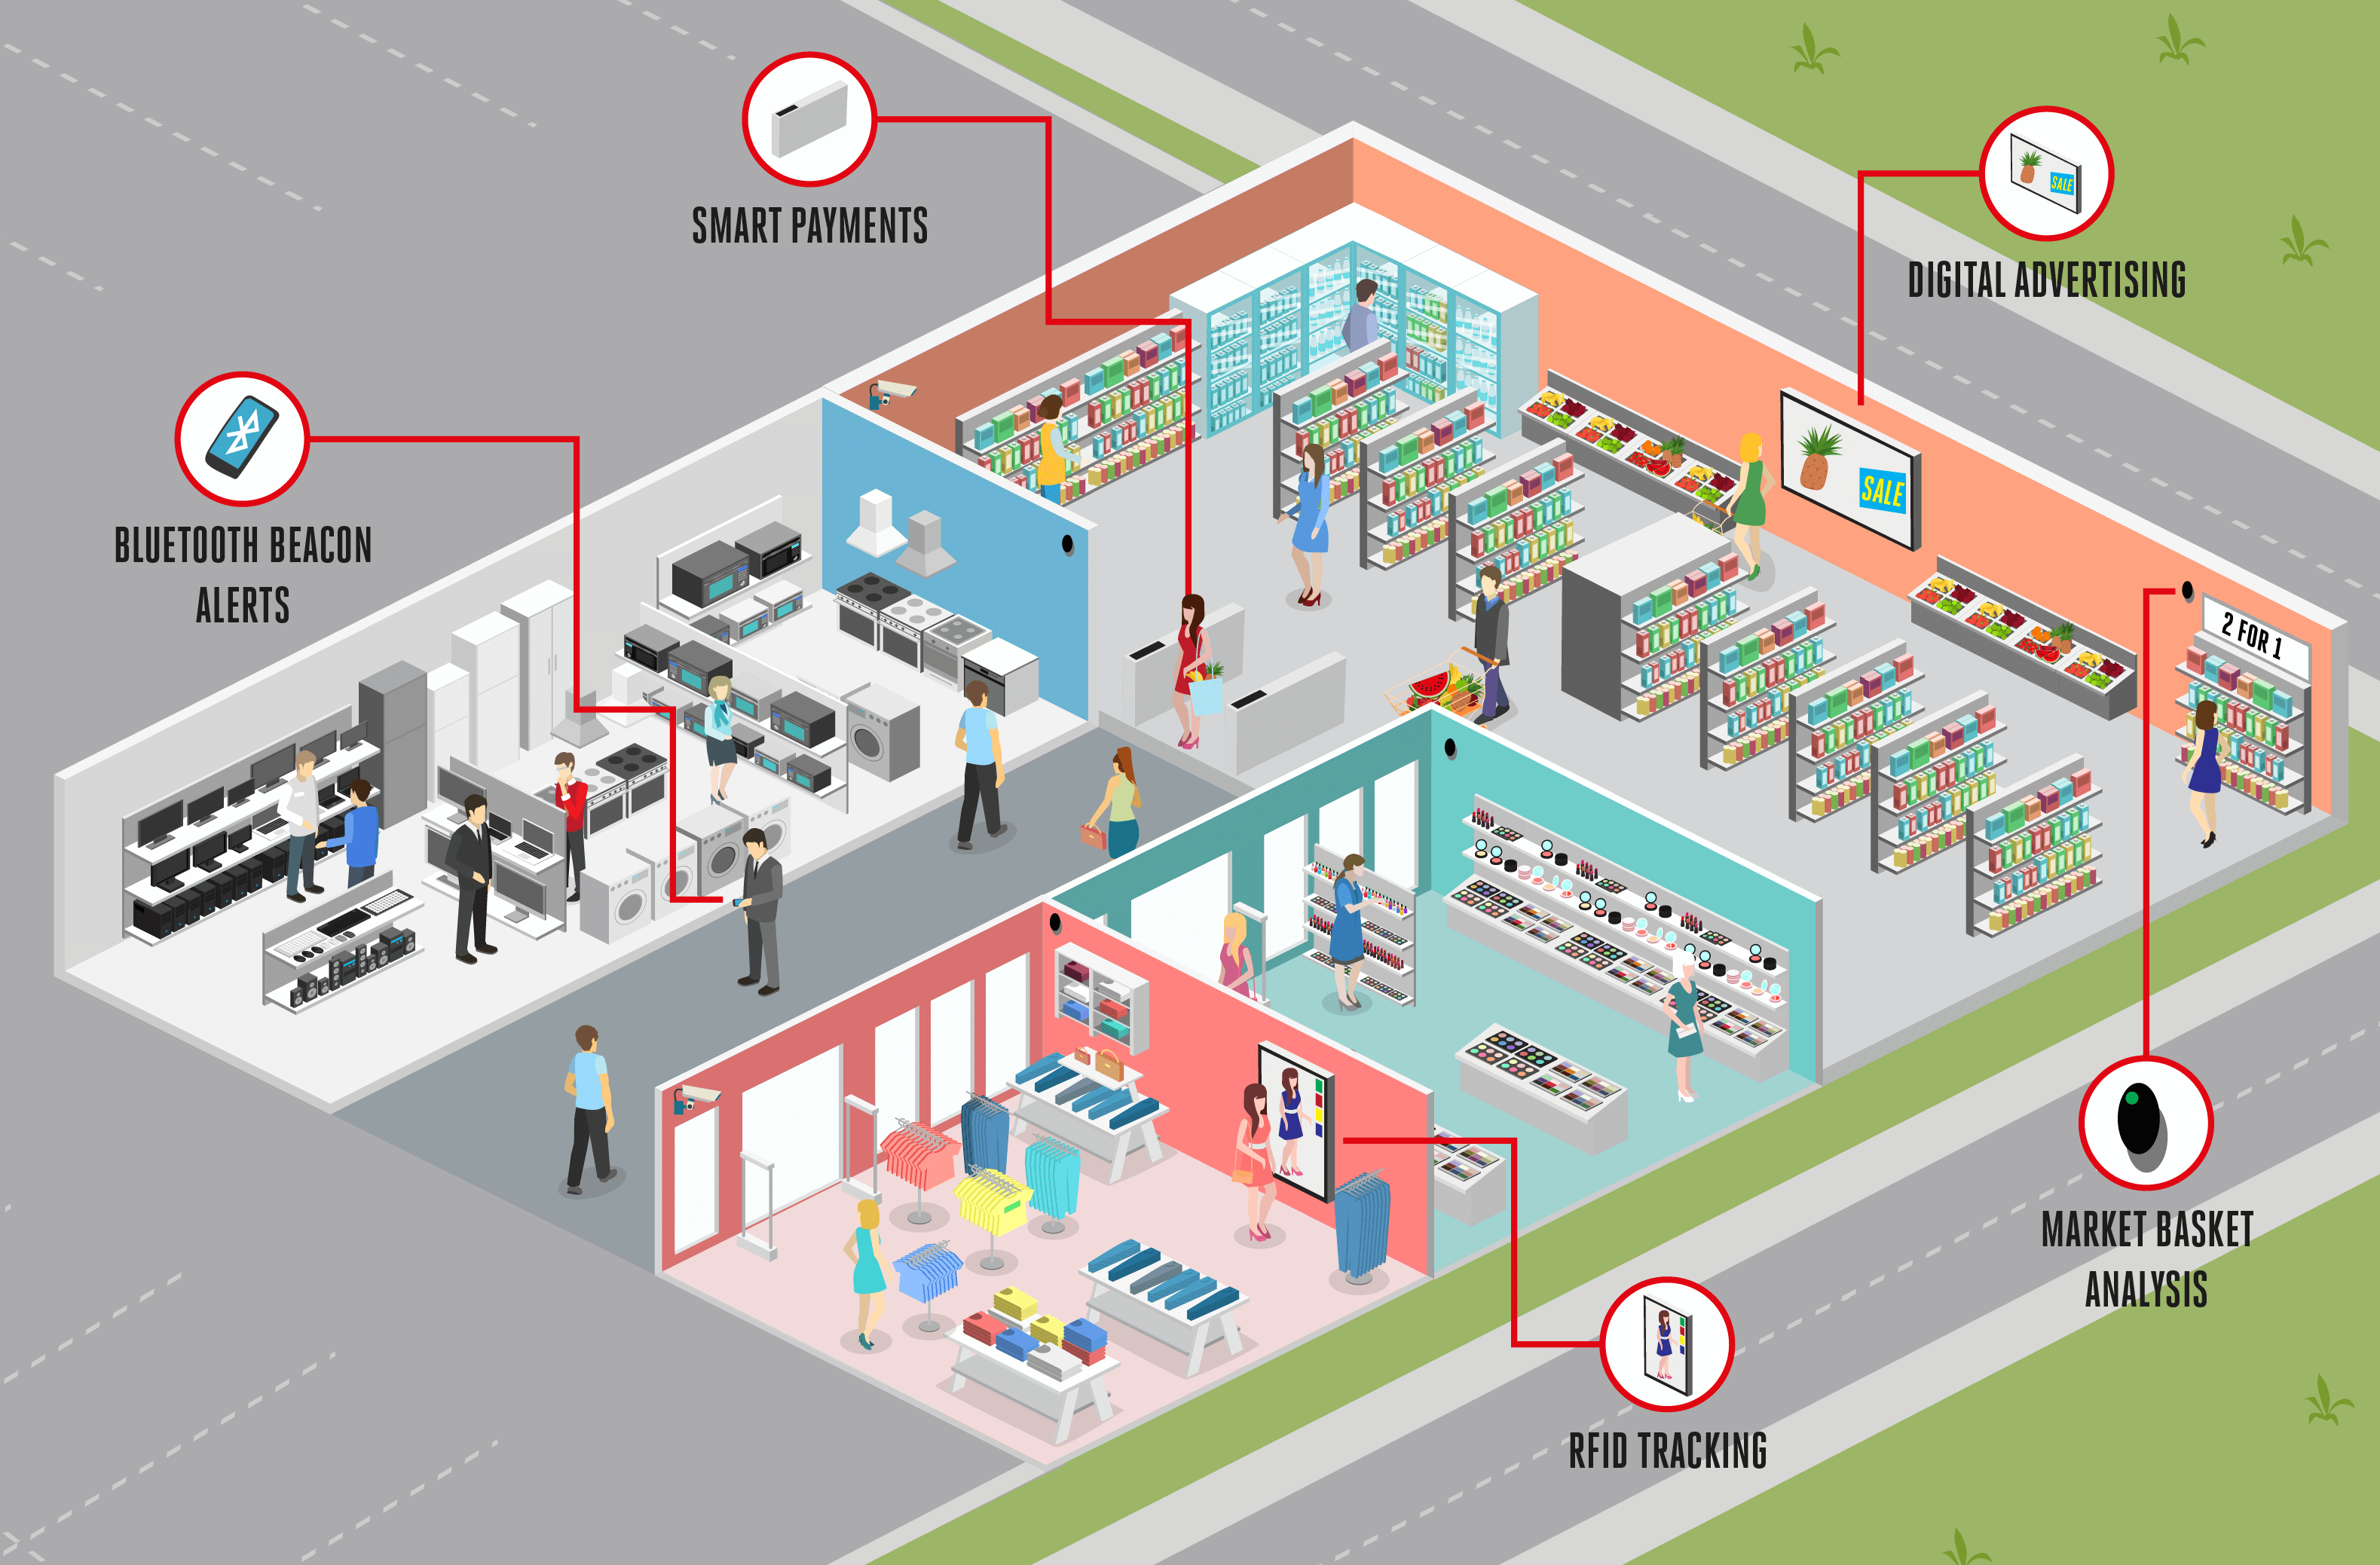 Internet of Things (IoT) in retail